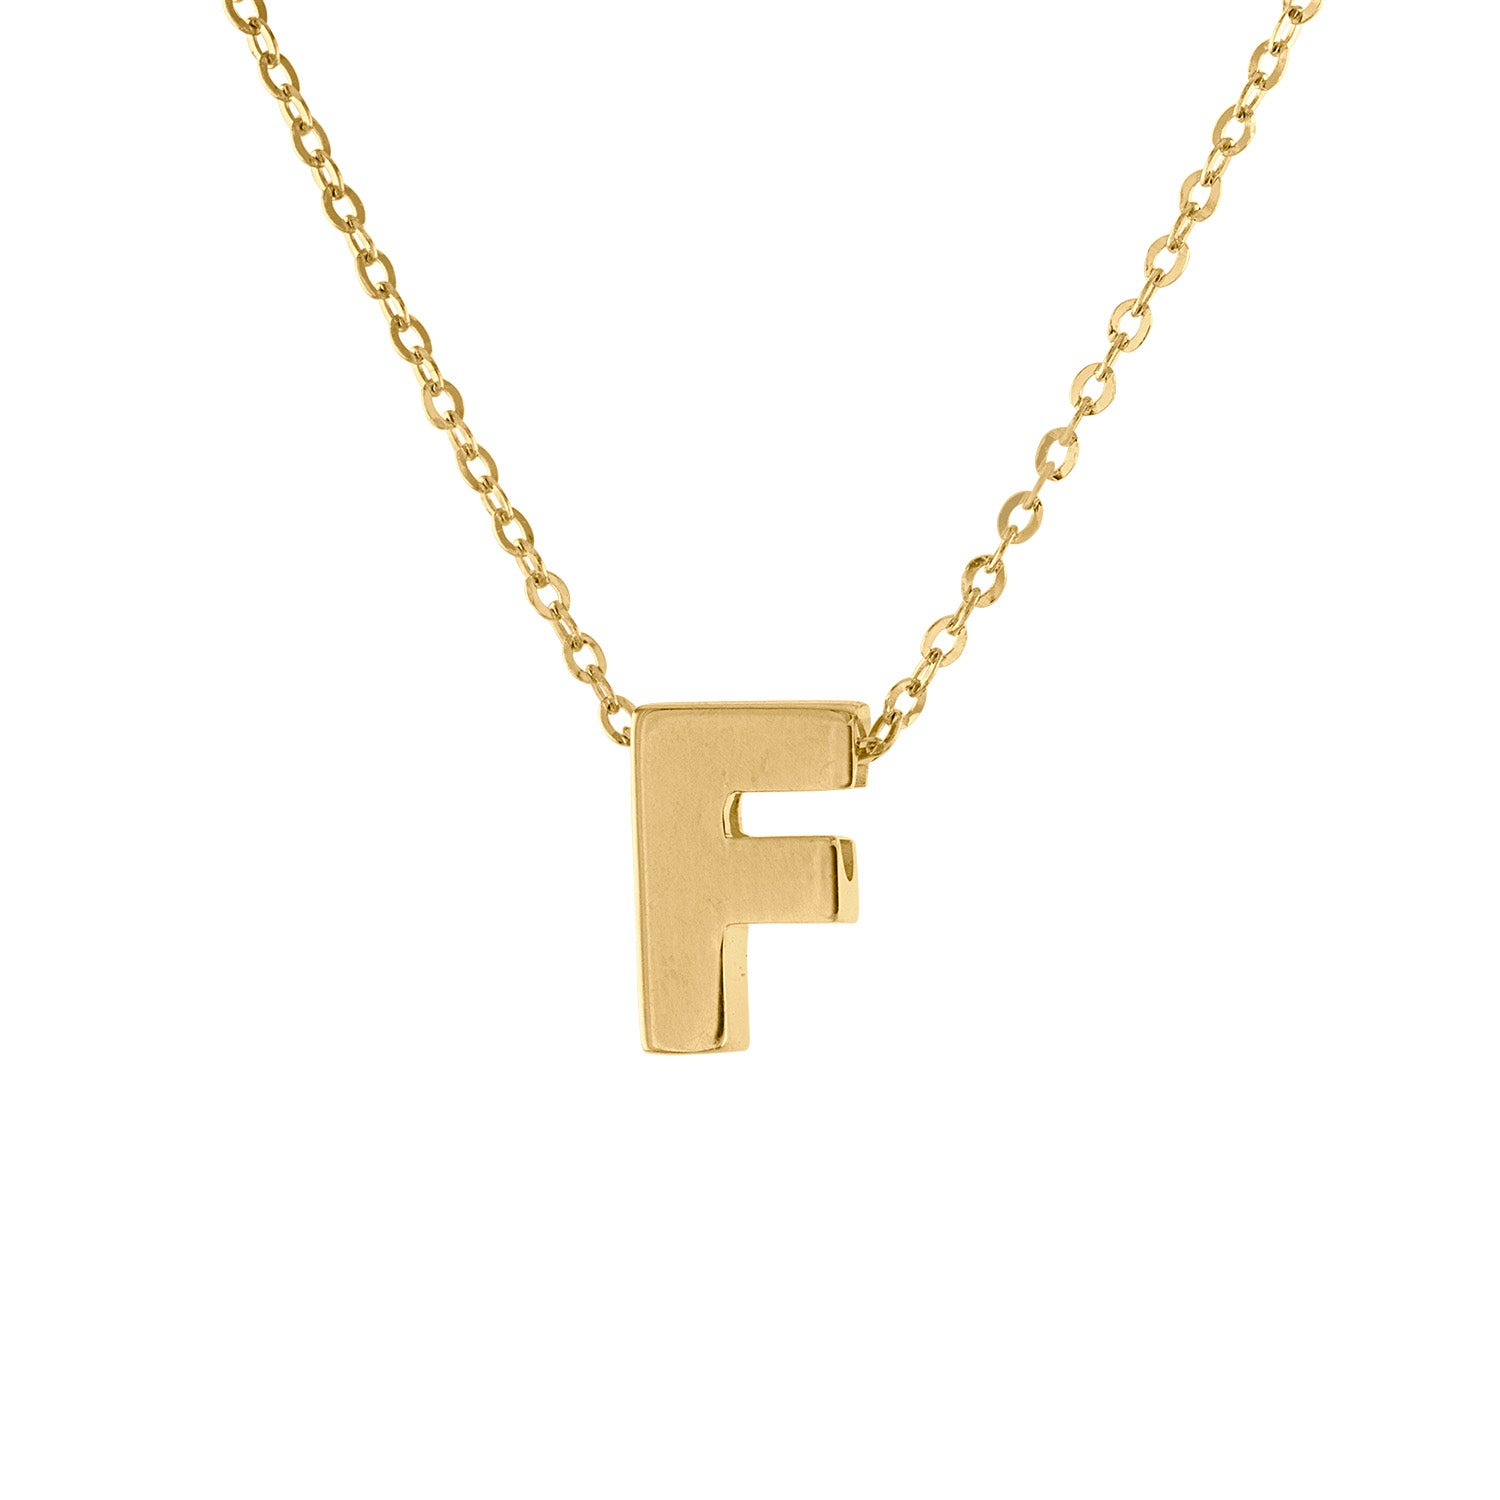 14k Yellow Gold plain initial F necklace